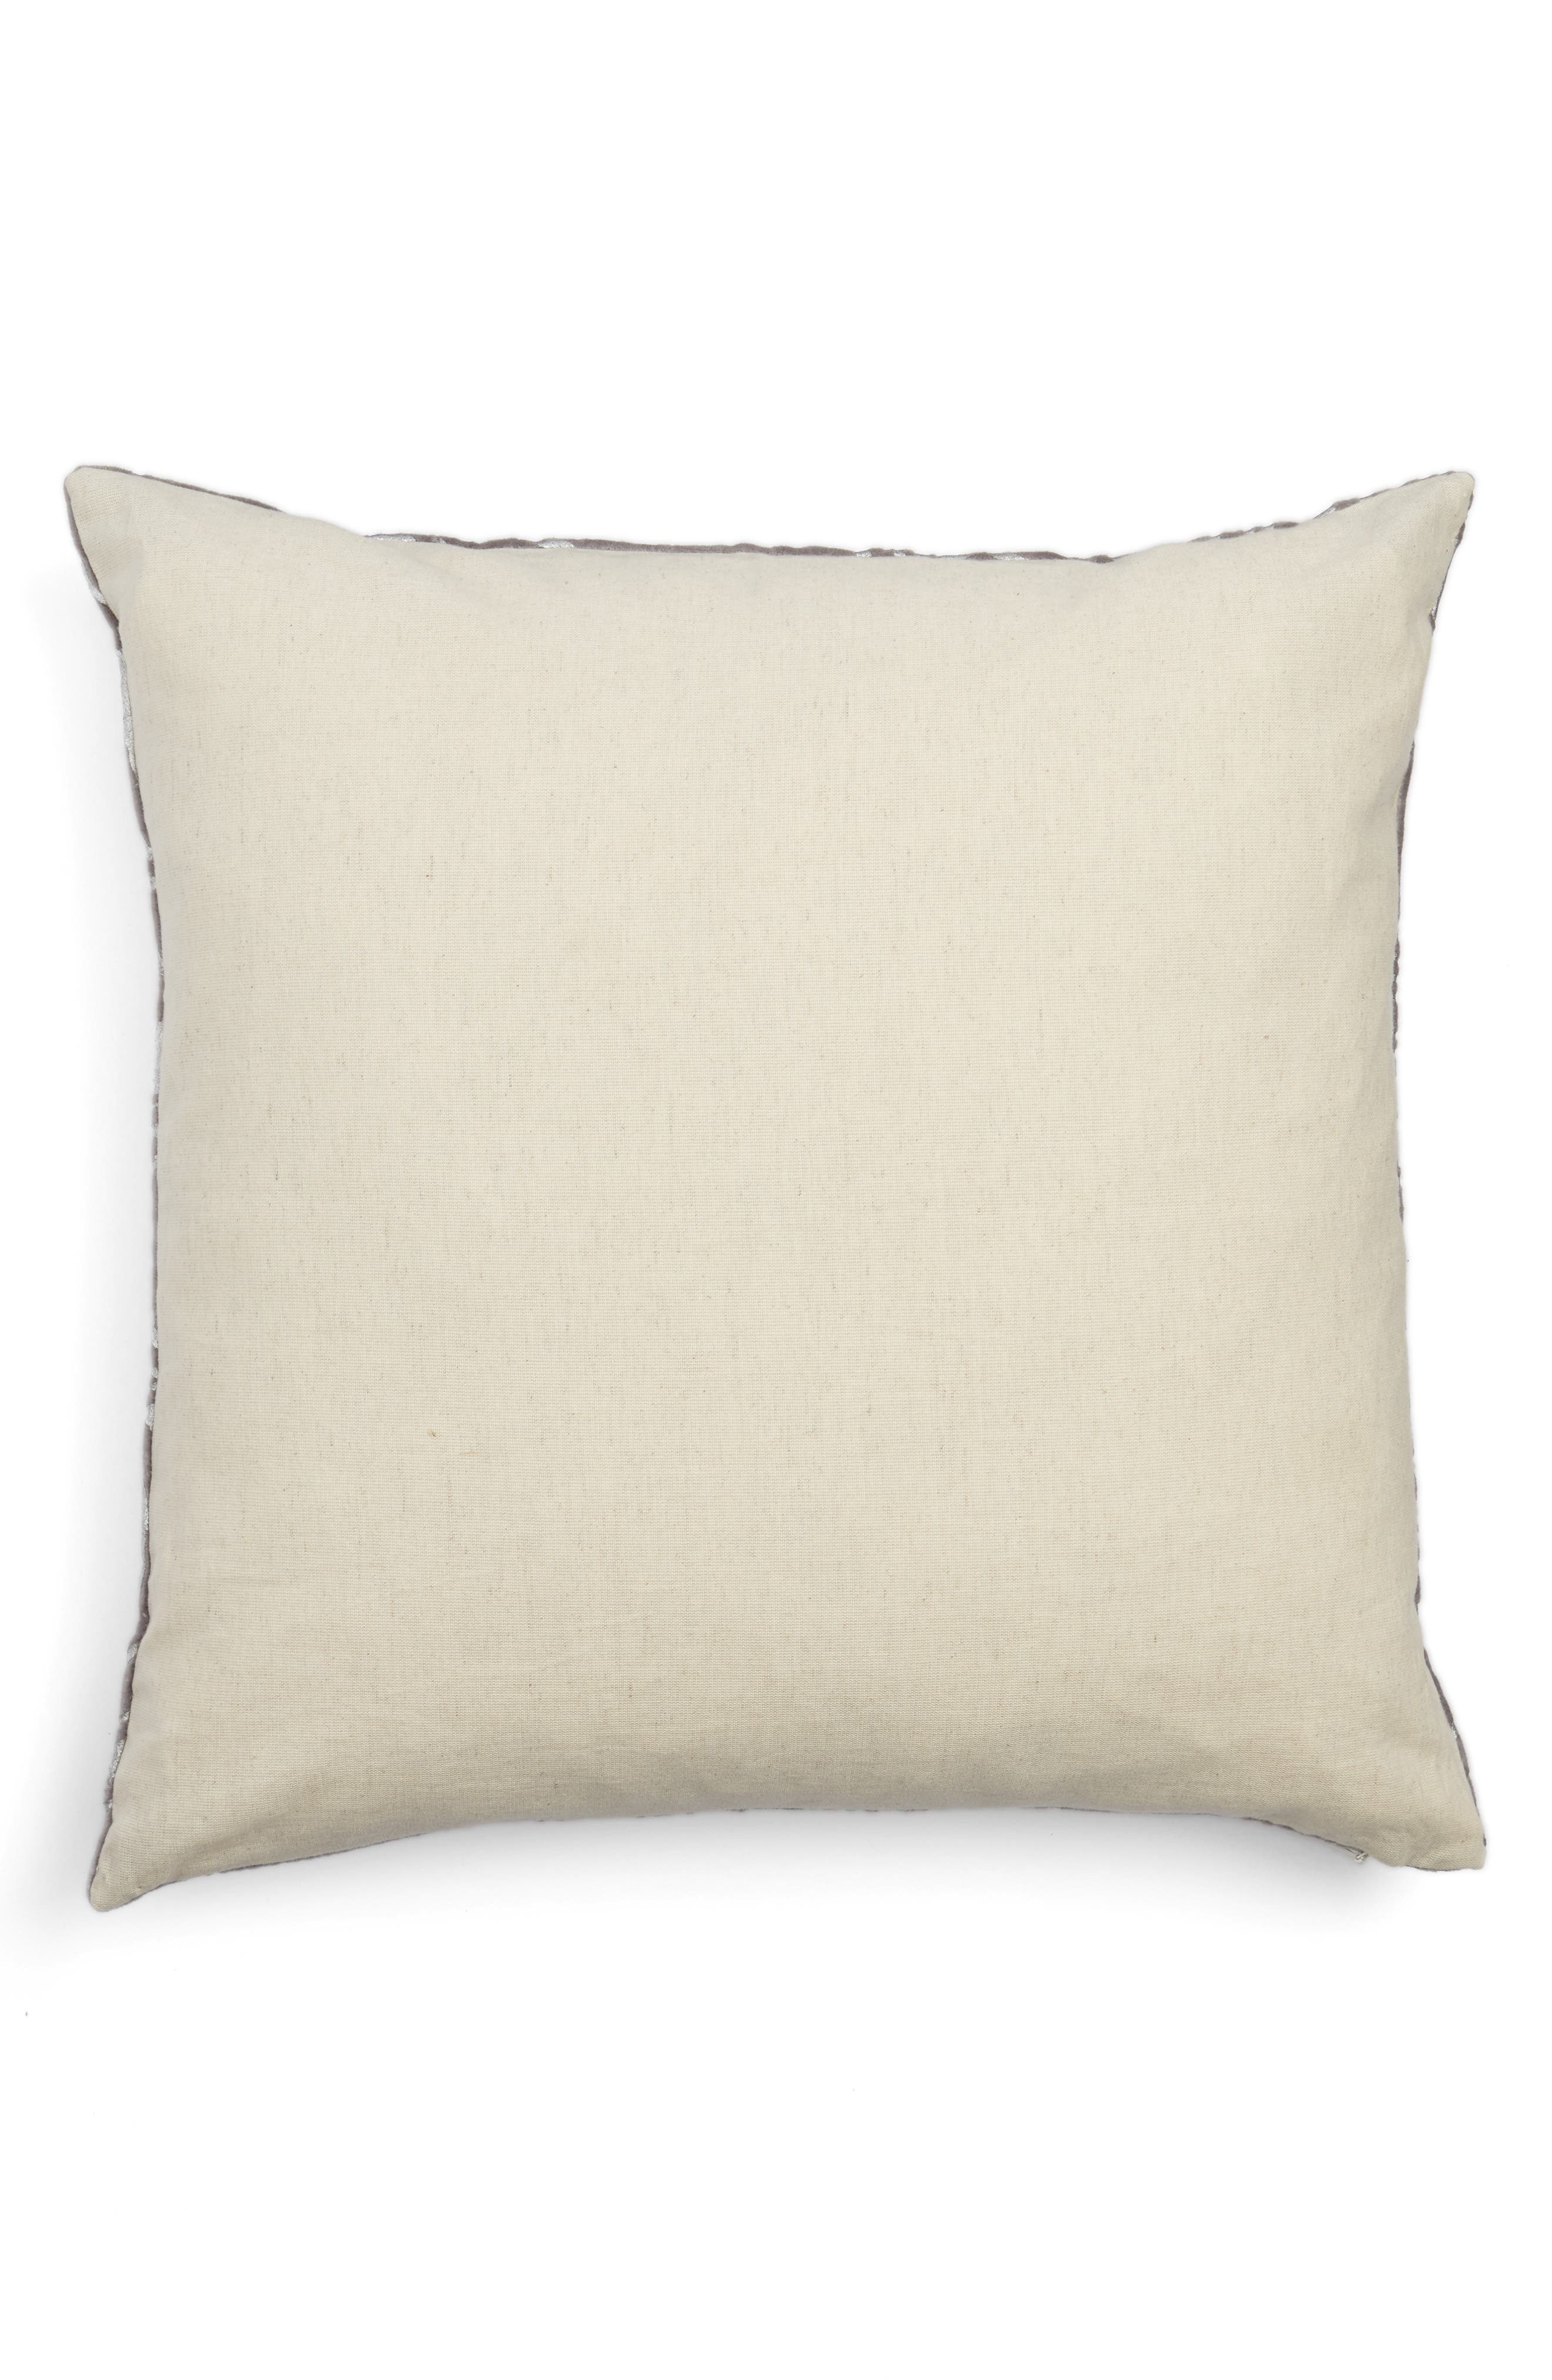 Foil Print Pillow,                             Alternate thumbnail 2, color,                             Grey Frost